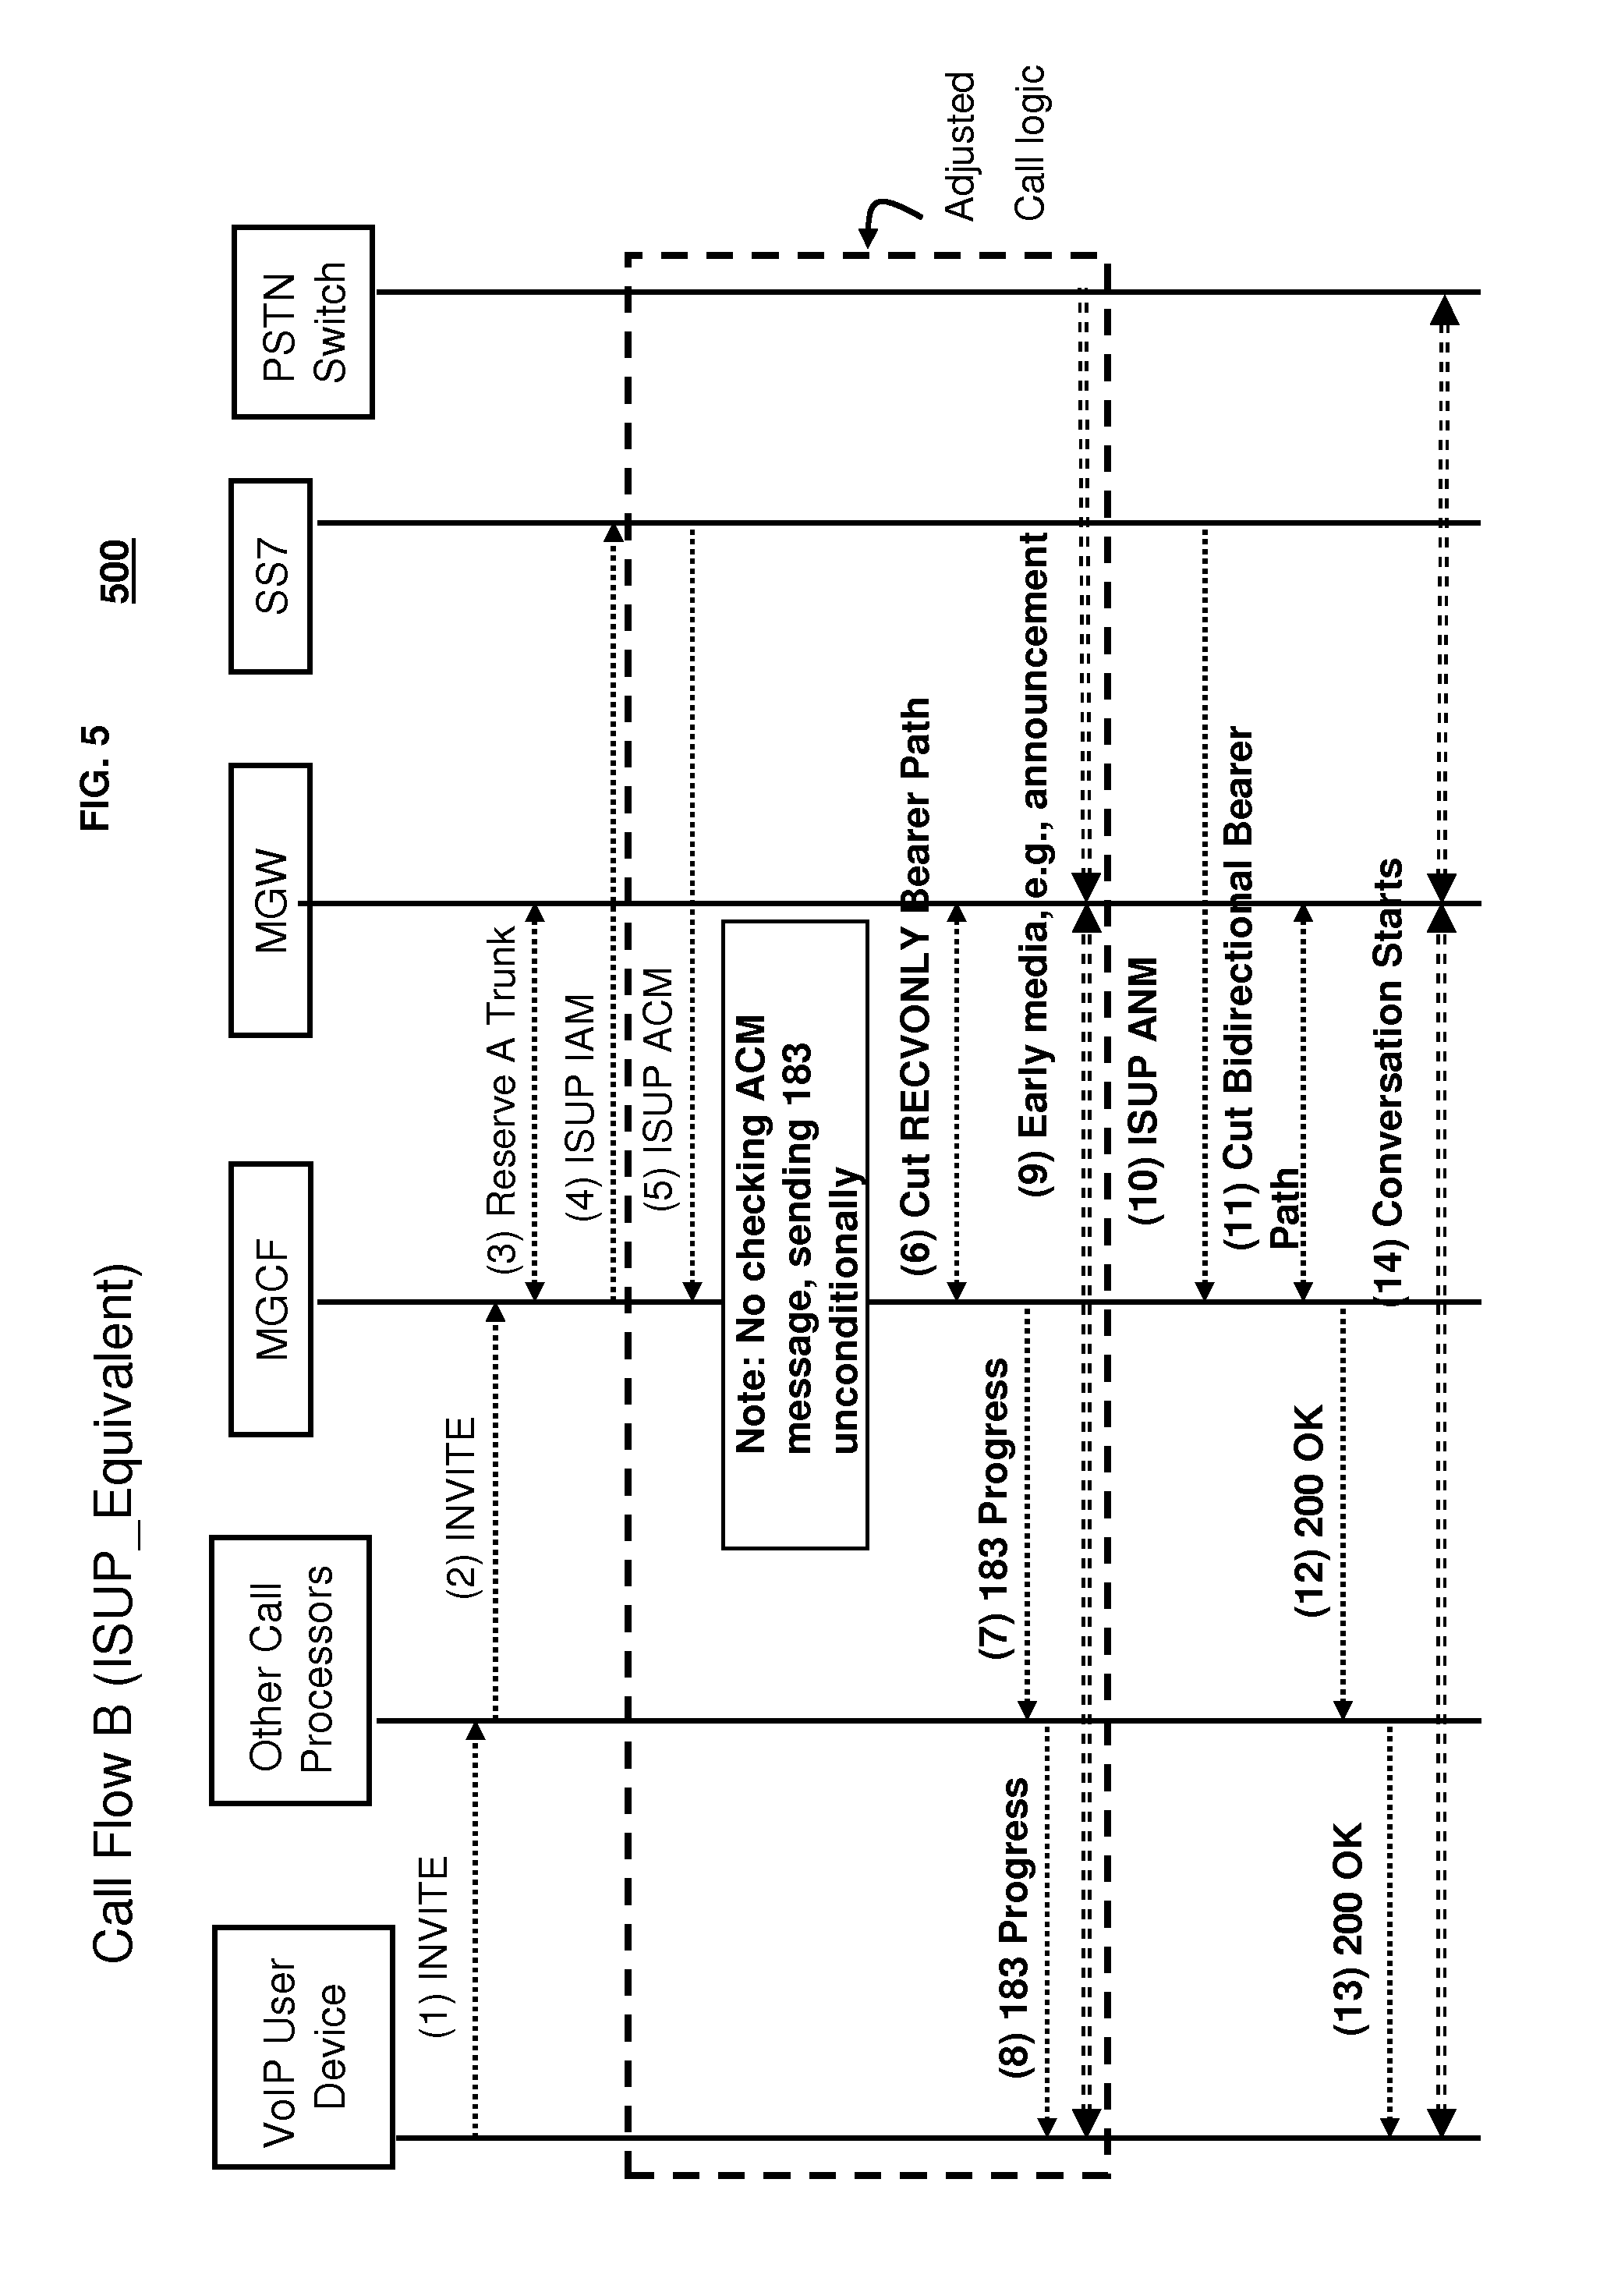 Brevet US20090097471 - Method and apparatus for call processing